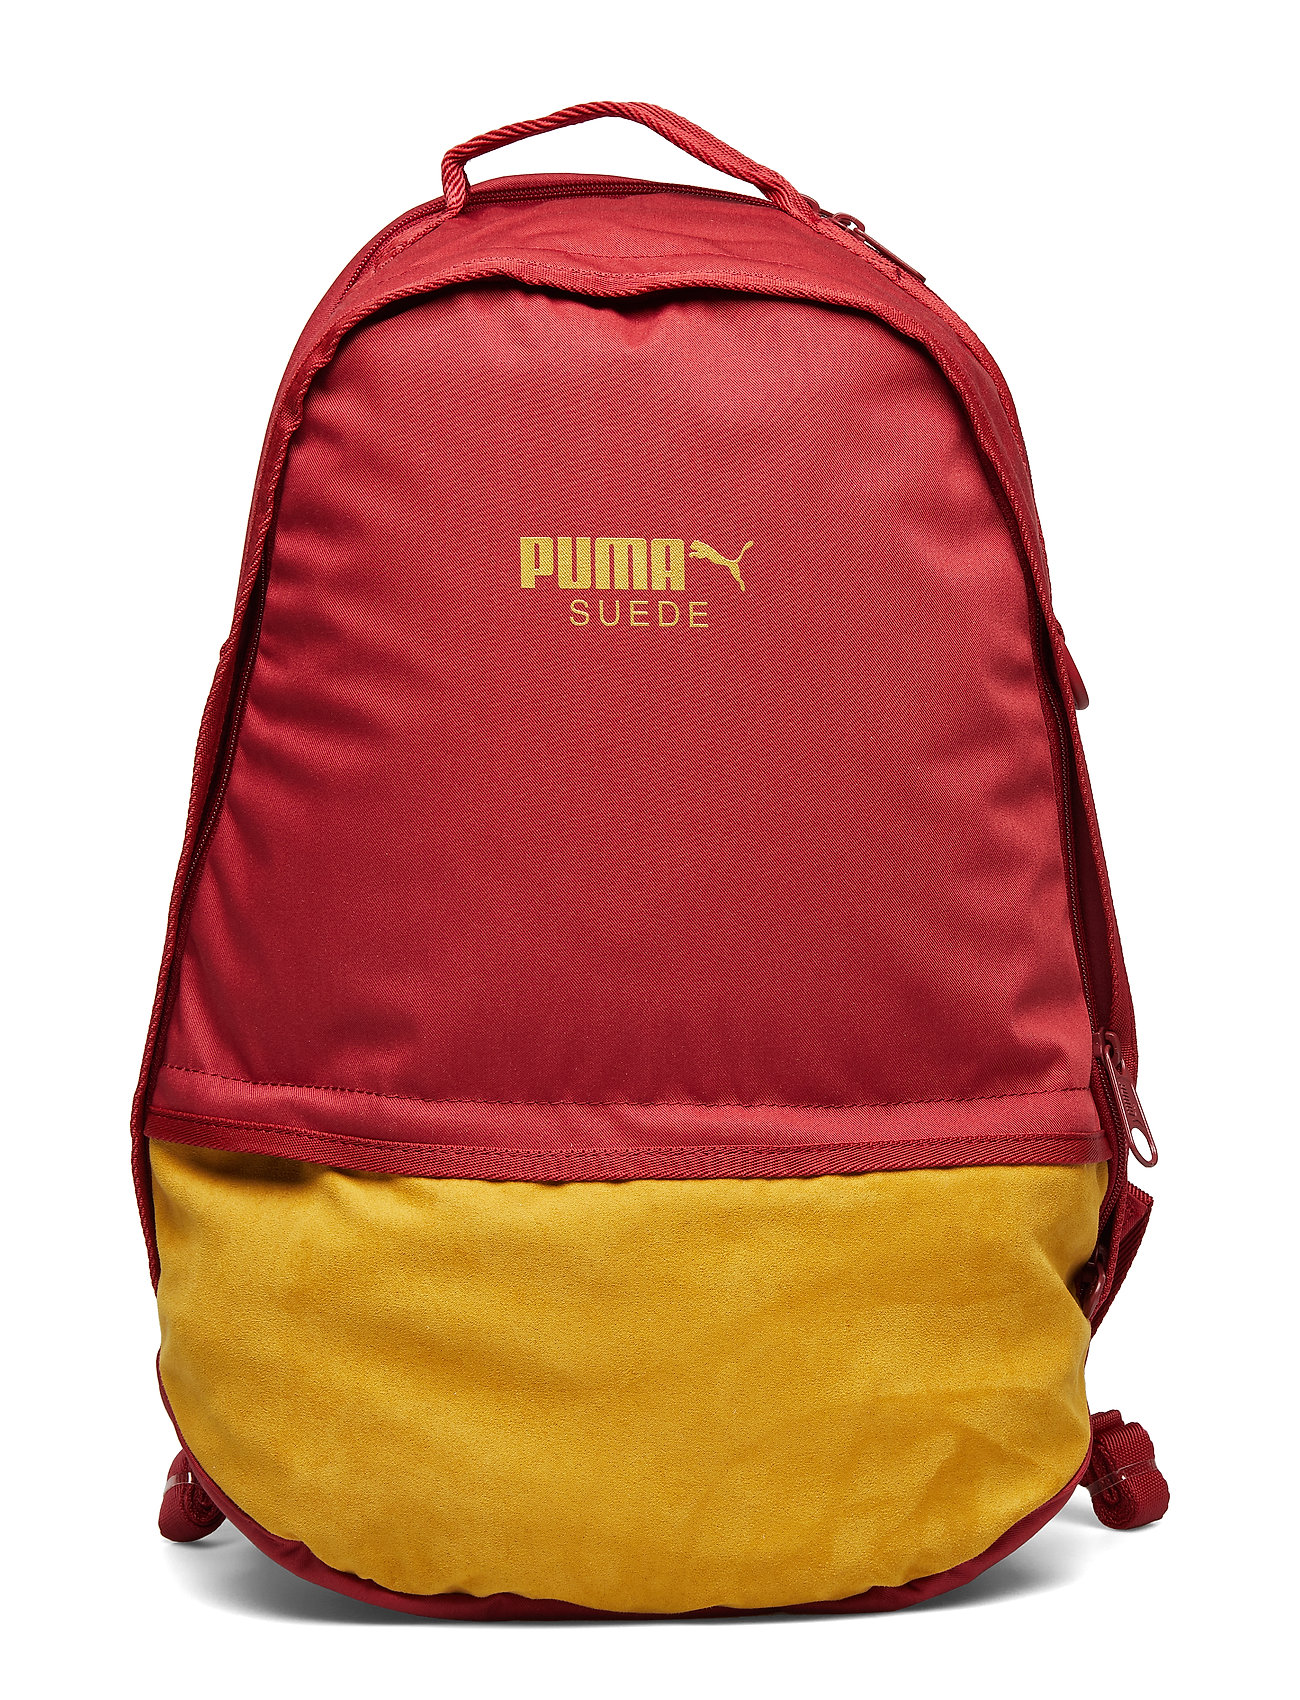 wholesale dealer 68fde f9809 Puma Suede Backpack